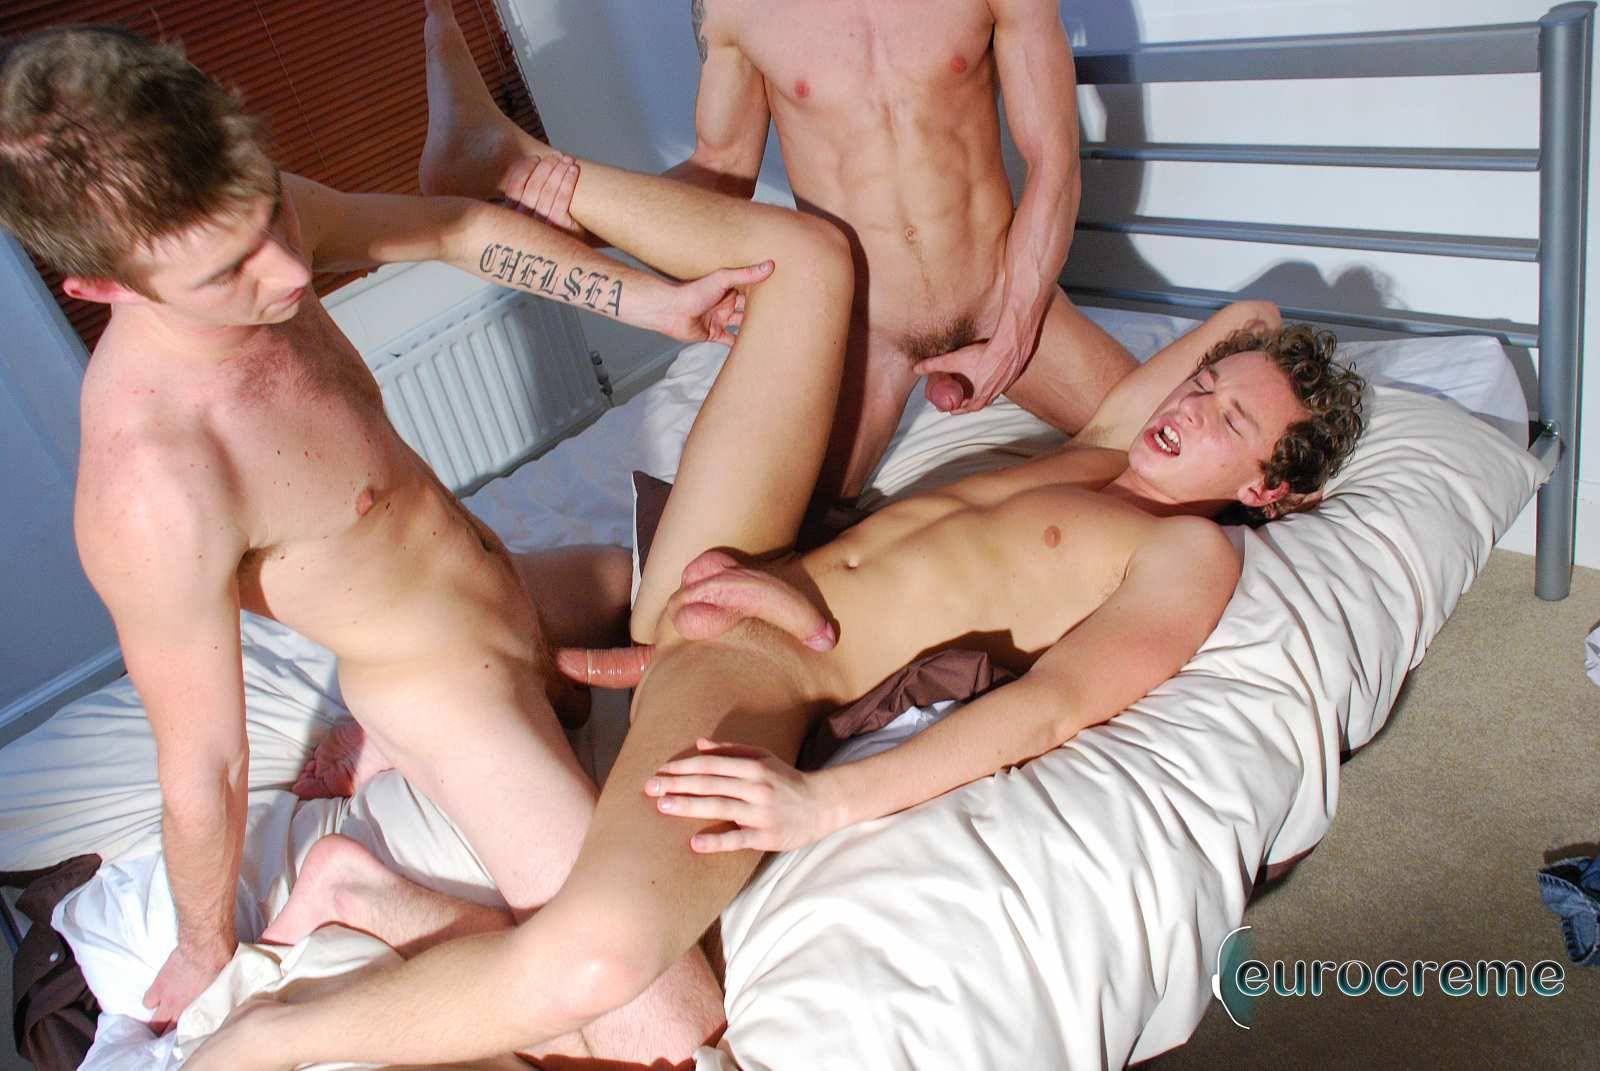 Eurocreme-Matt-Hughes-and-Alex-Stevens-and-Philipe-Delvaux-Twinks-Fucking-Amateur-Gay-Porn-19 Matt Hughes Uses His 11-Inch Uncut Cock On Two Tricks